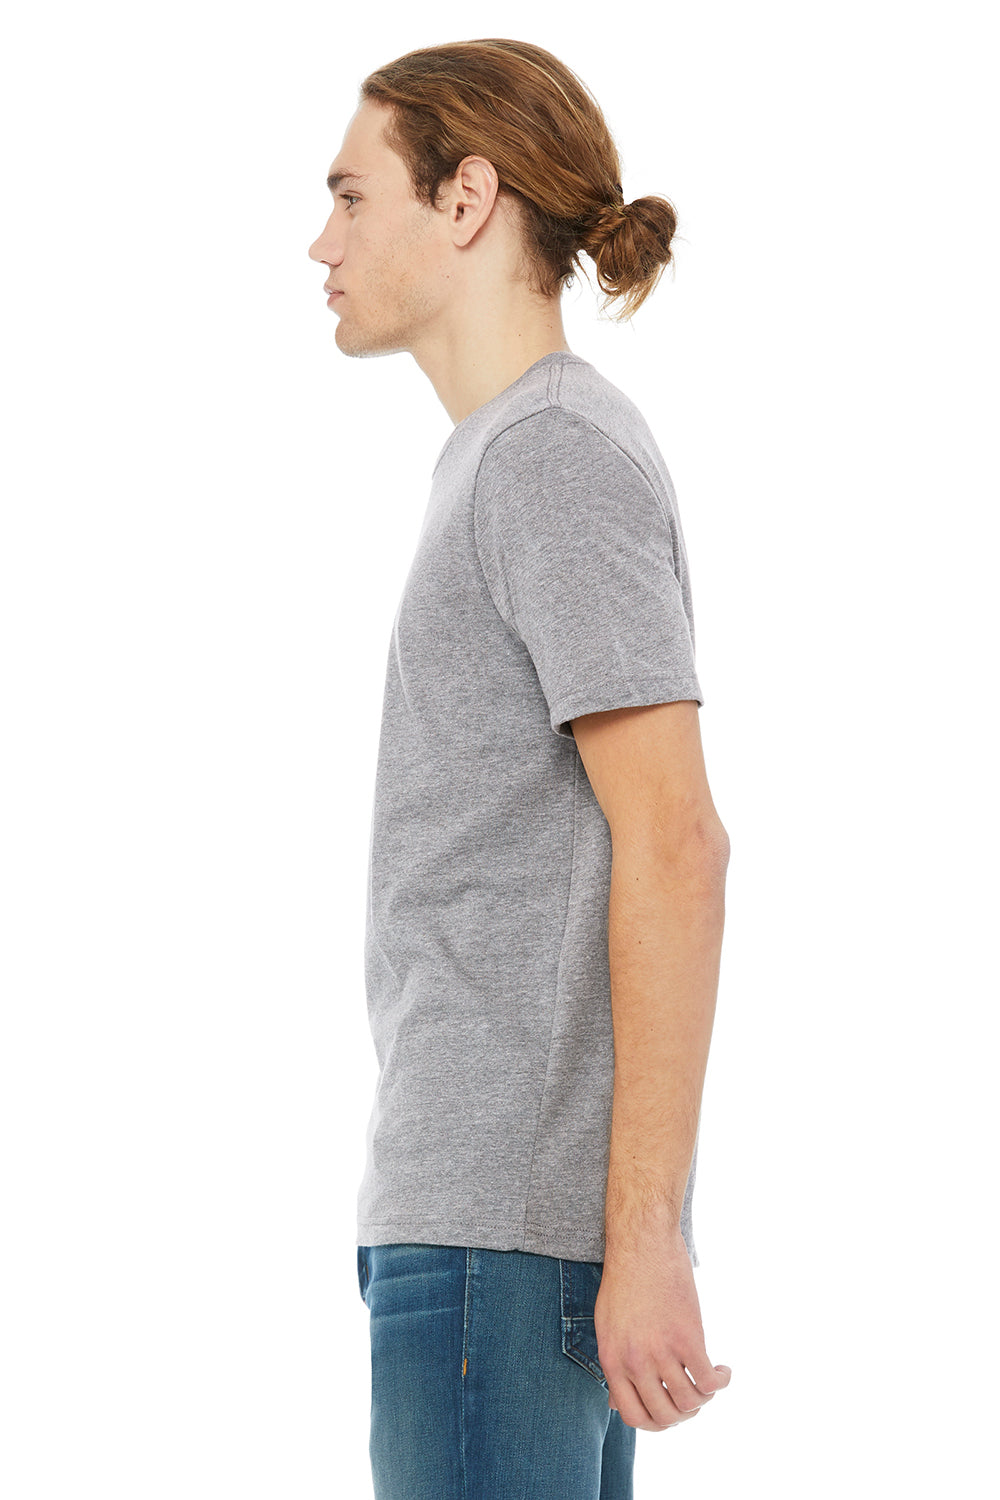 Bella + Canvas 3091 Mens Short Sleeve Crewneck T-Shirt Heather Grey Side